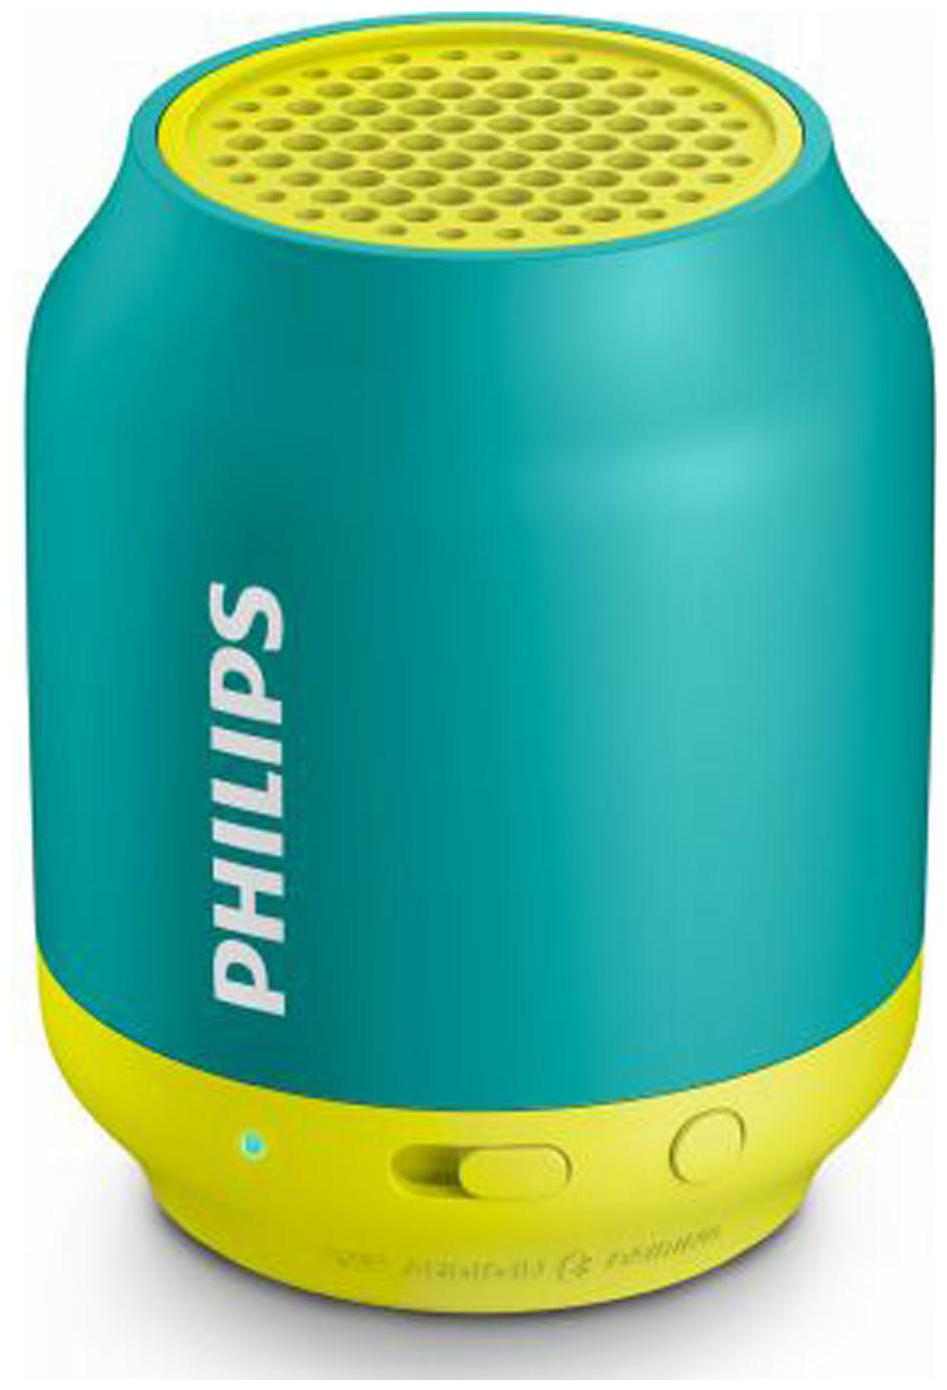 Philips BT50A Bluetooth Portable speaker   Green   Yellow   by True Tech